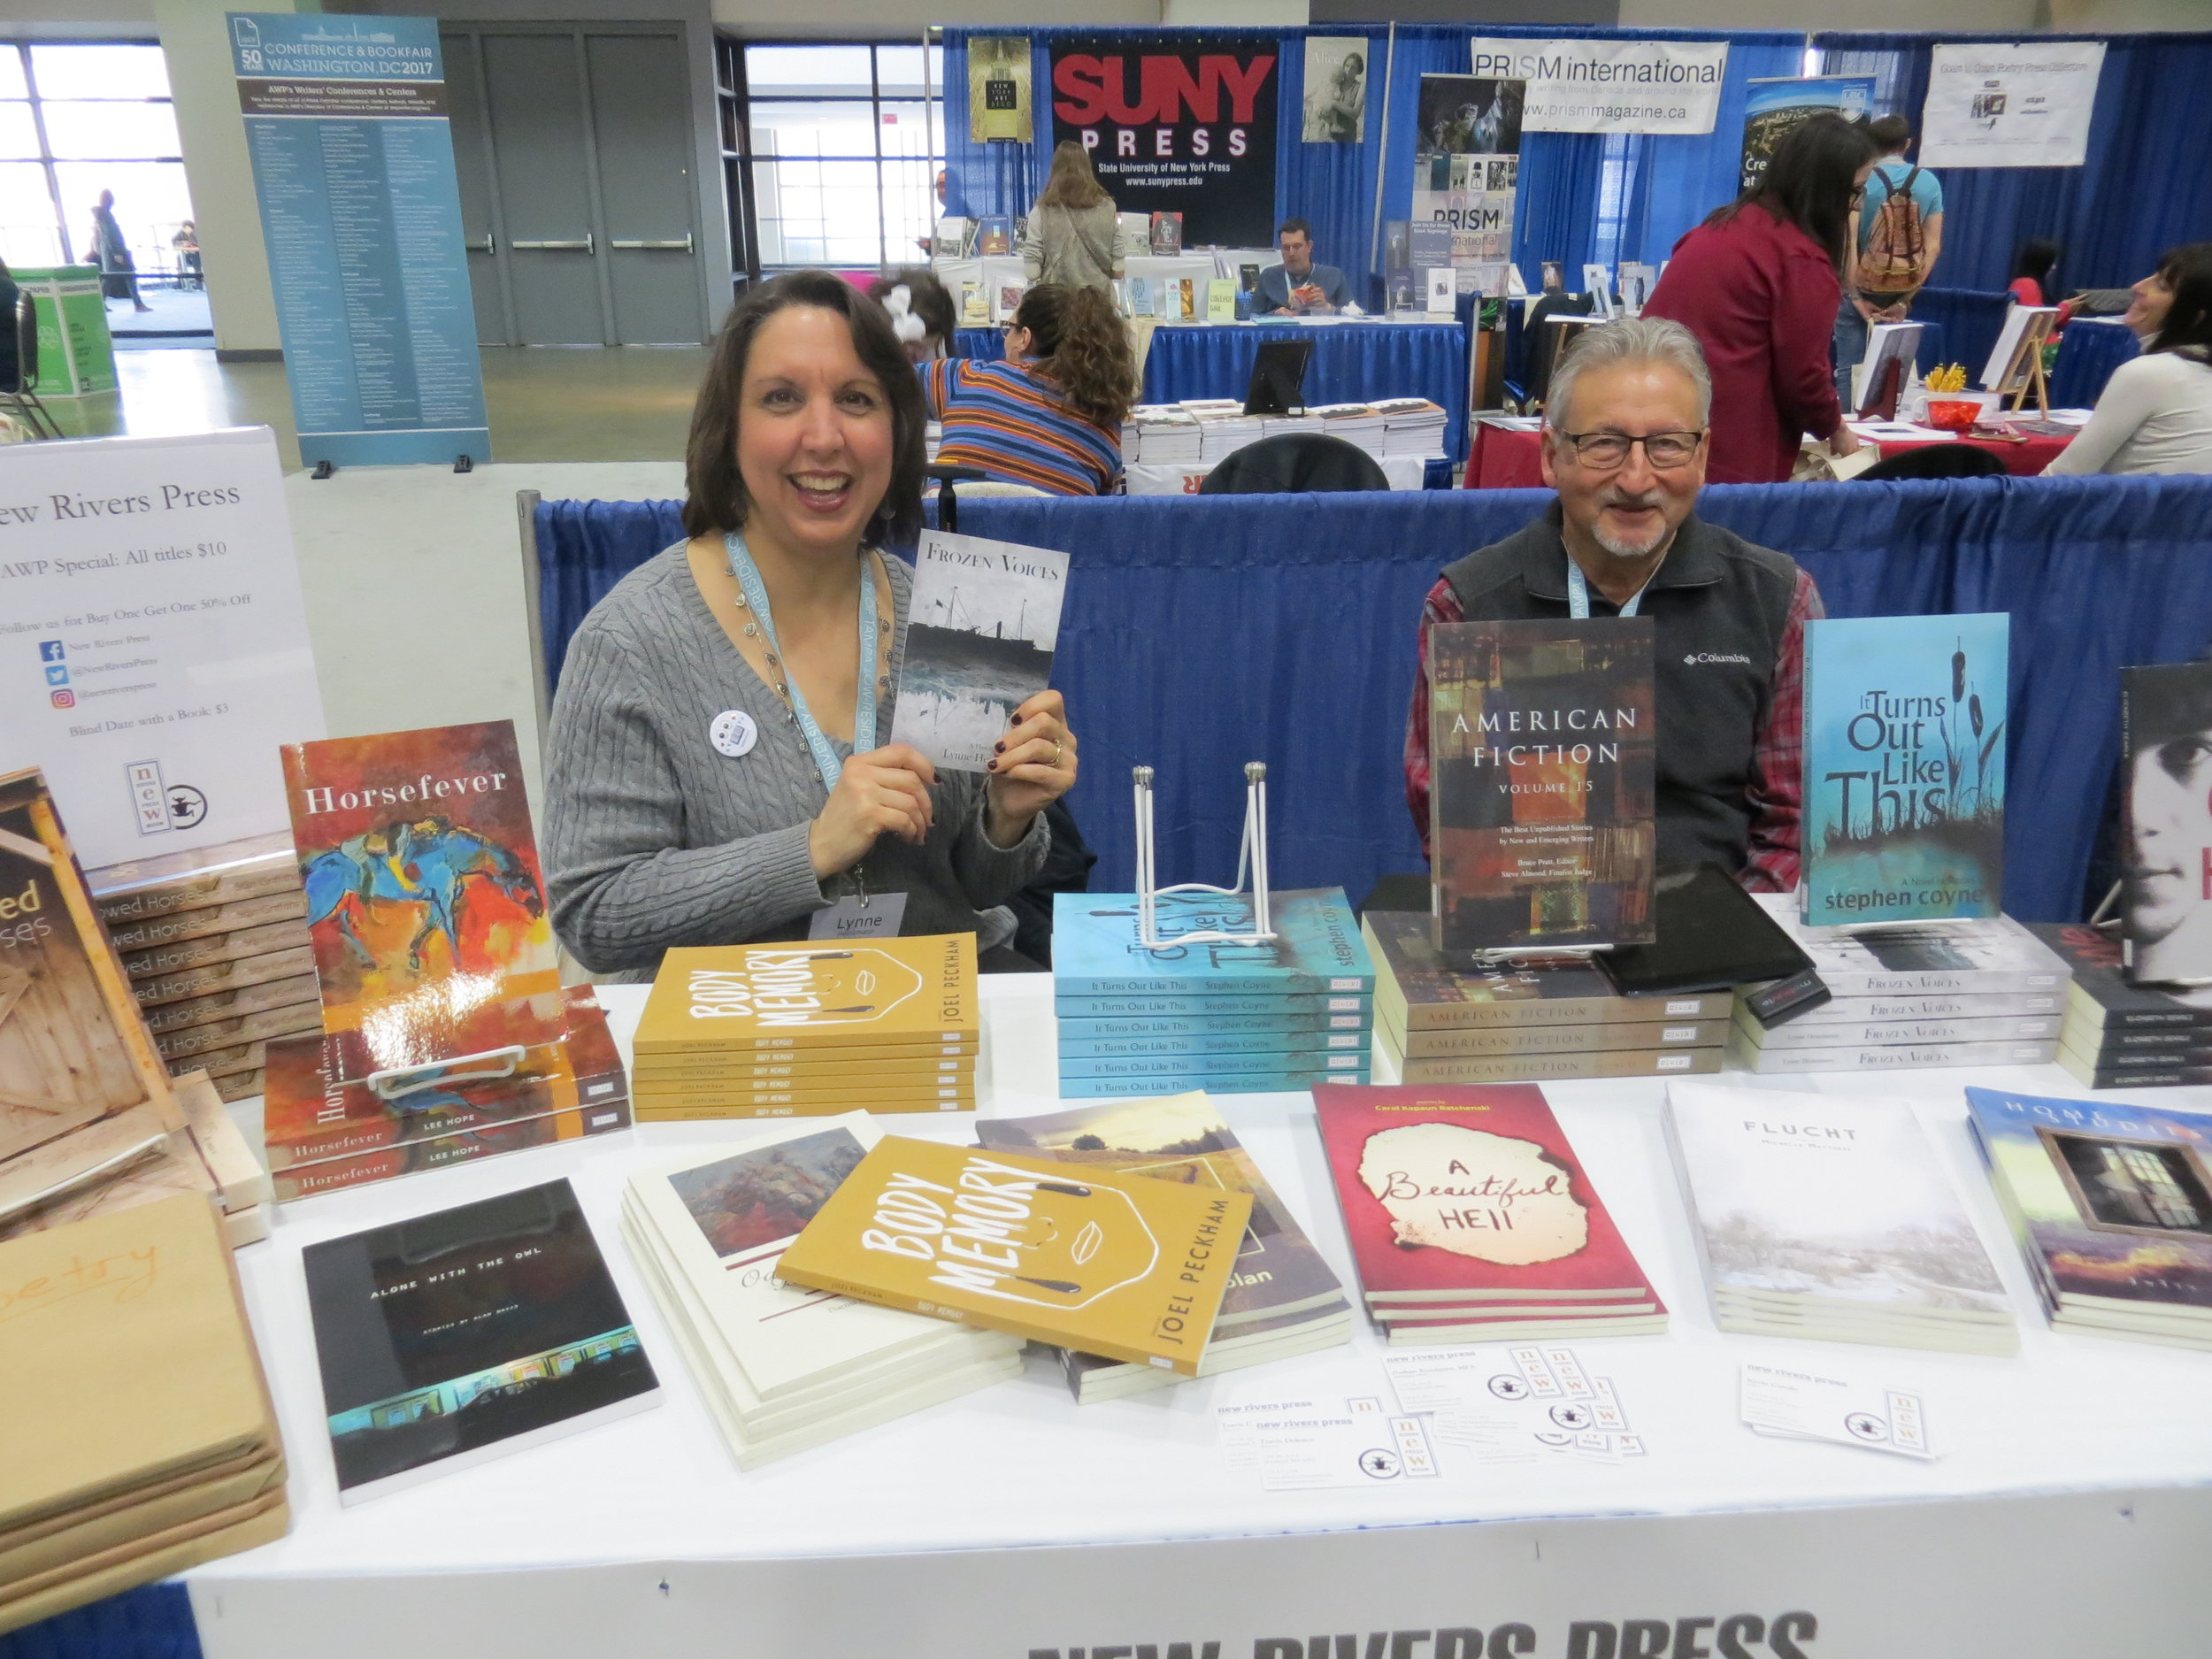 Al Davis and me at the New Rivers Press Booth, AWP Conference, Washington DC, 2017